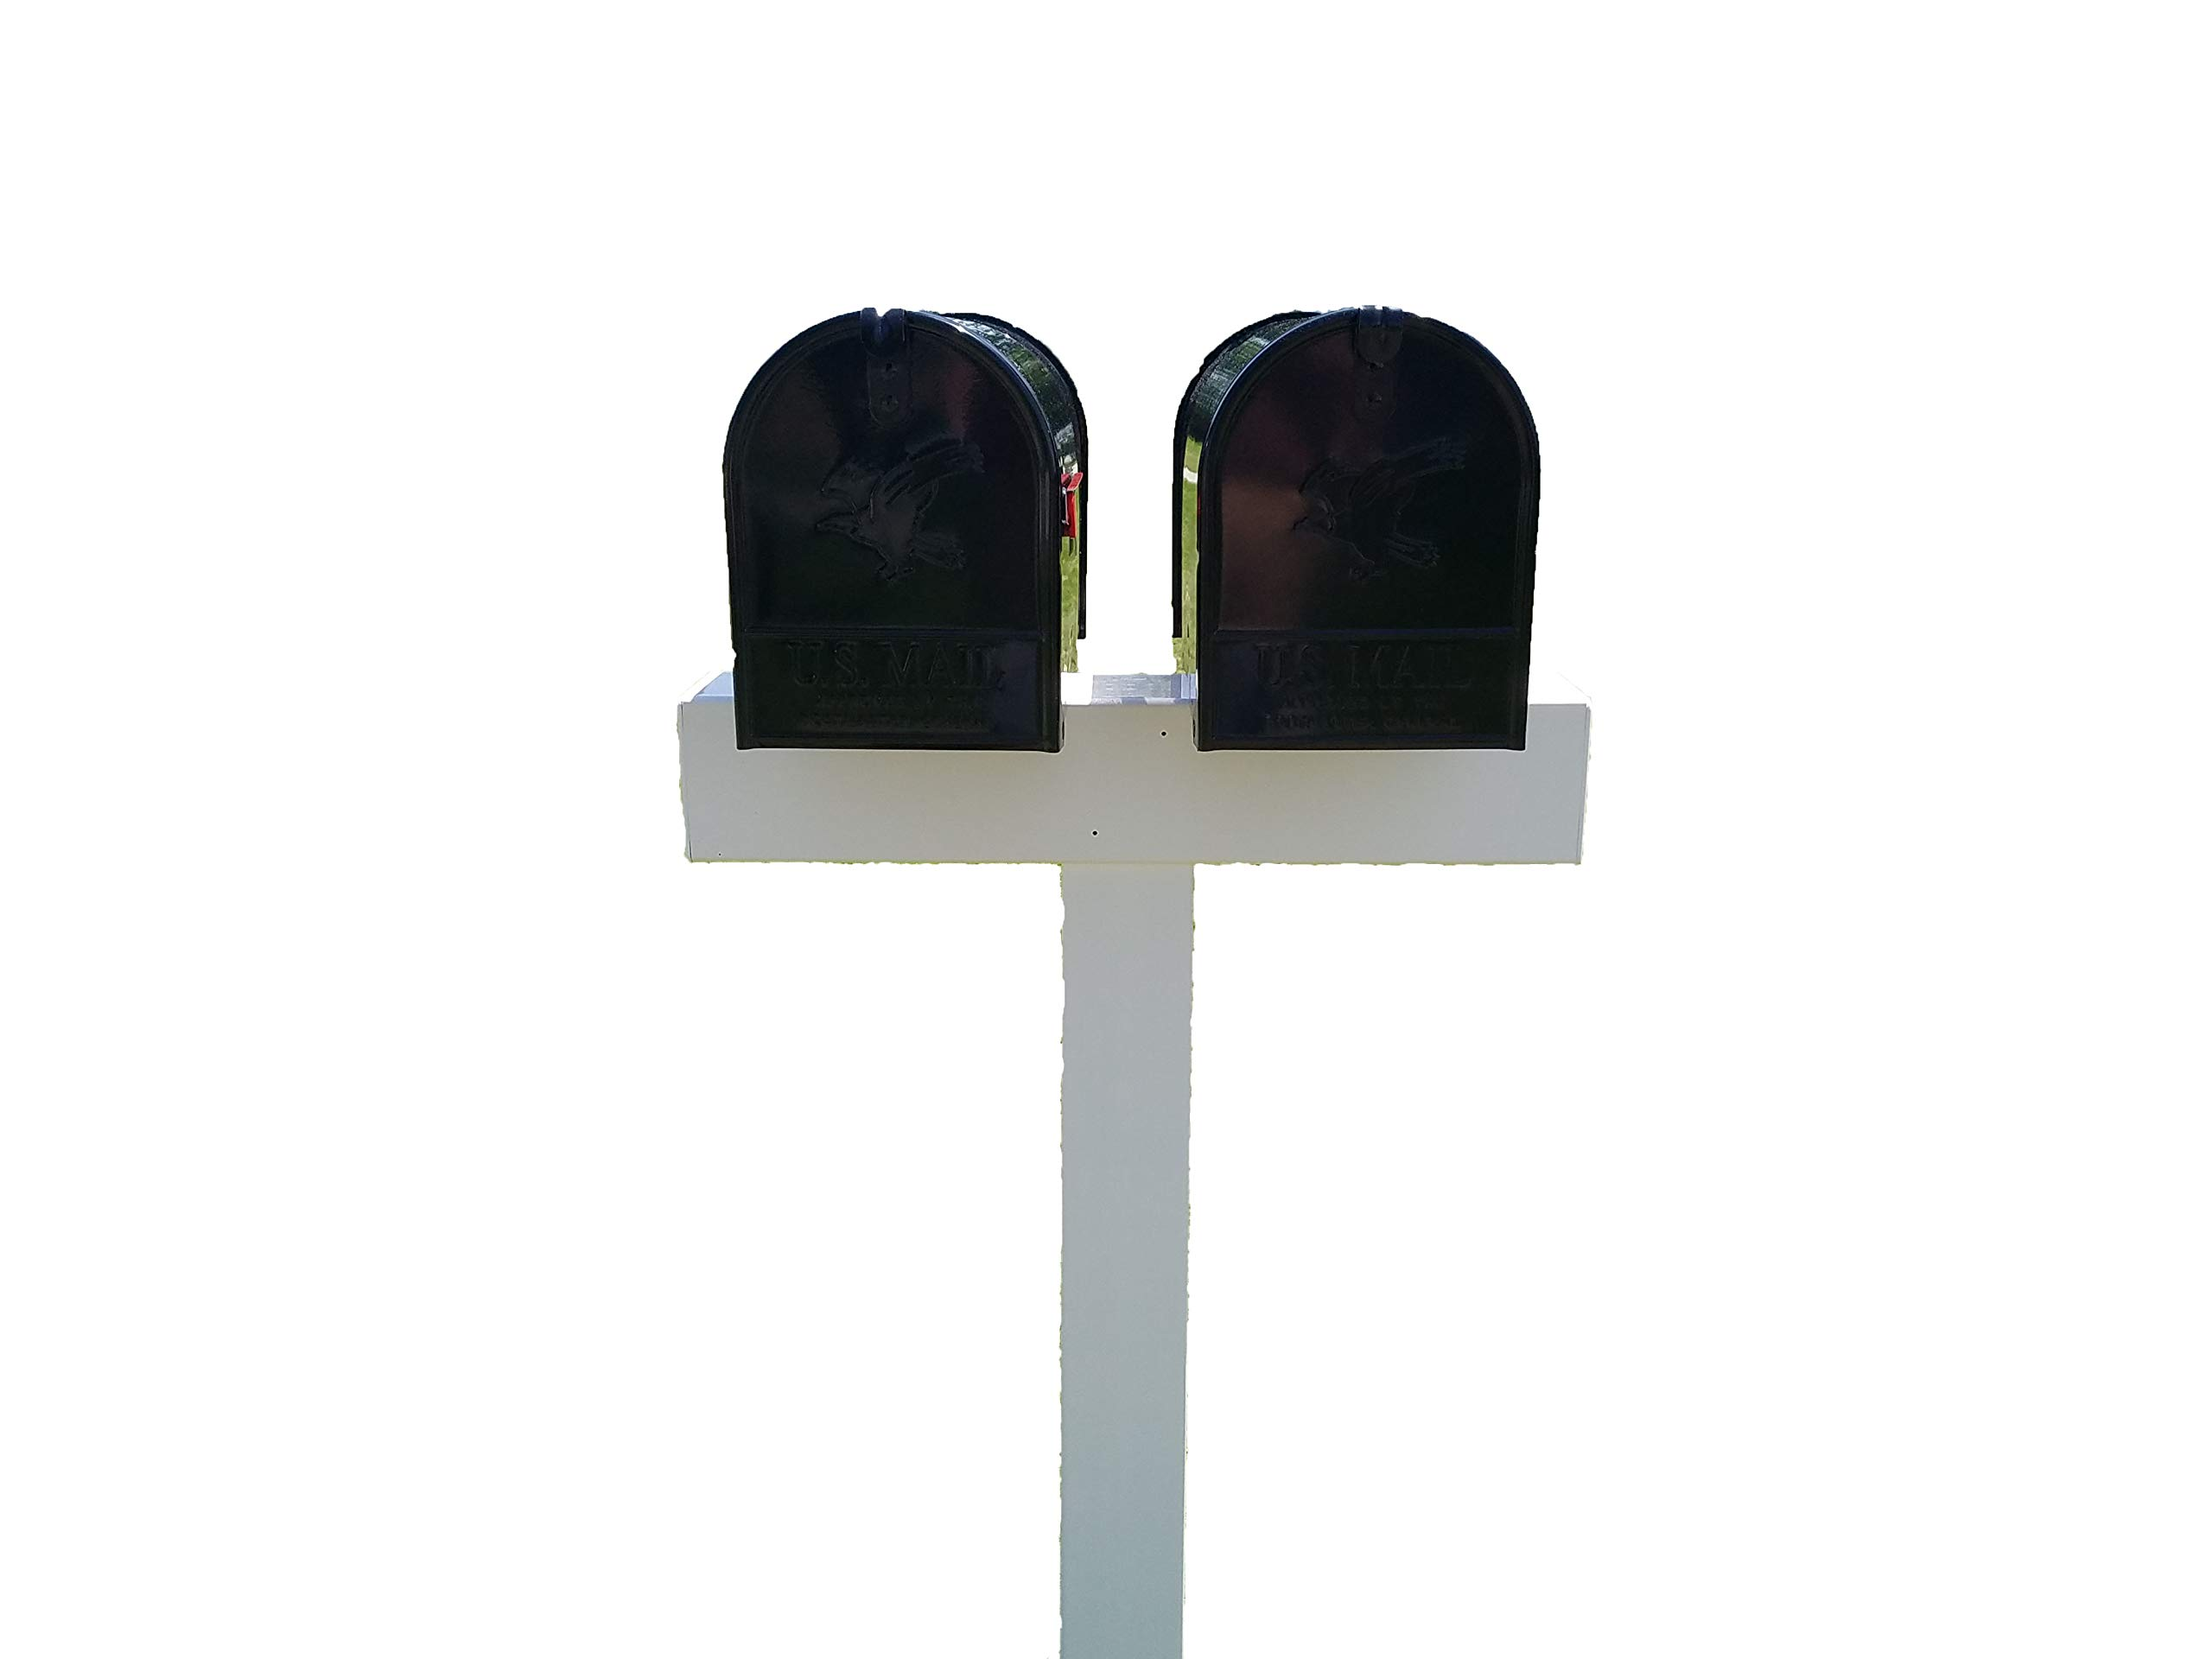 Handy Post 2, 42-in x 26-in White Vinyl Mailbox Post Sleeve by Handy Post